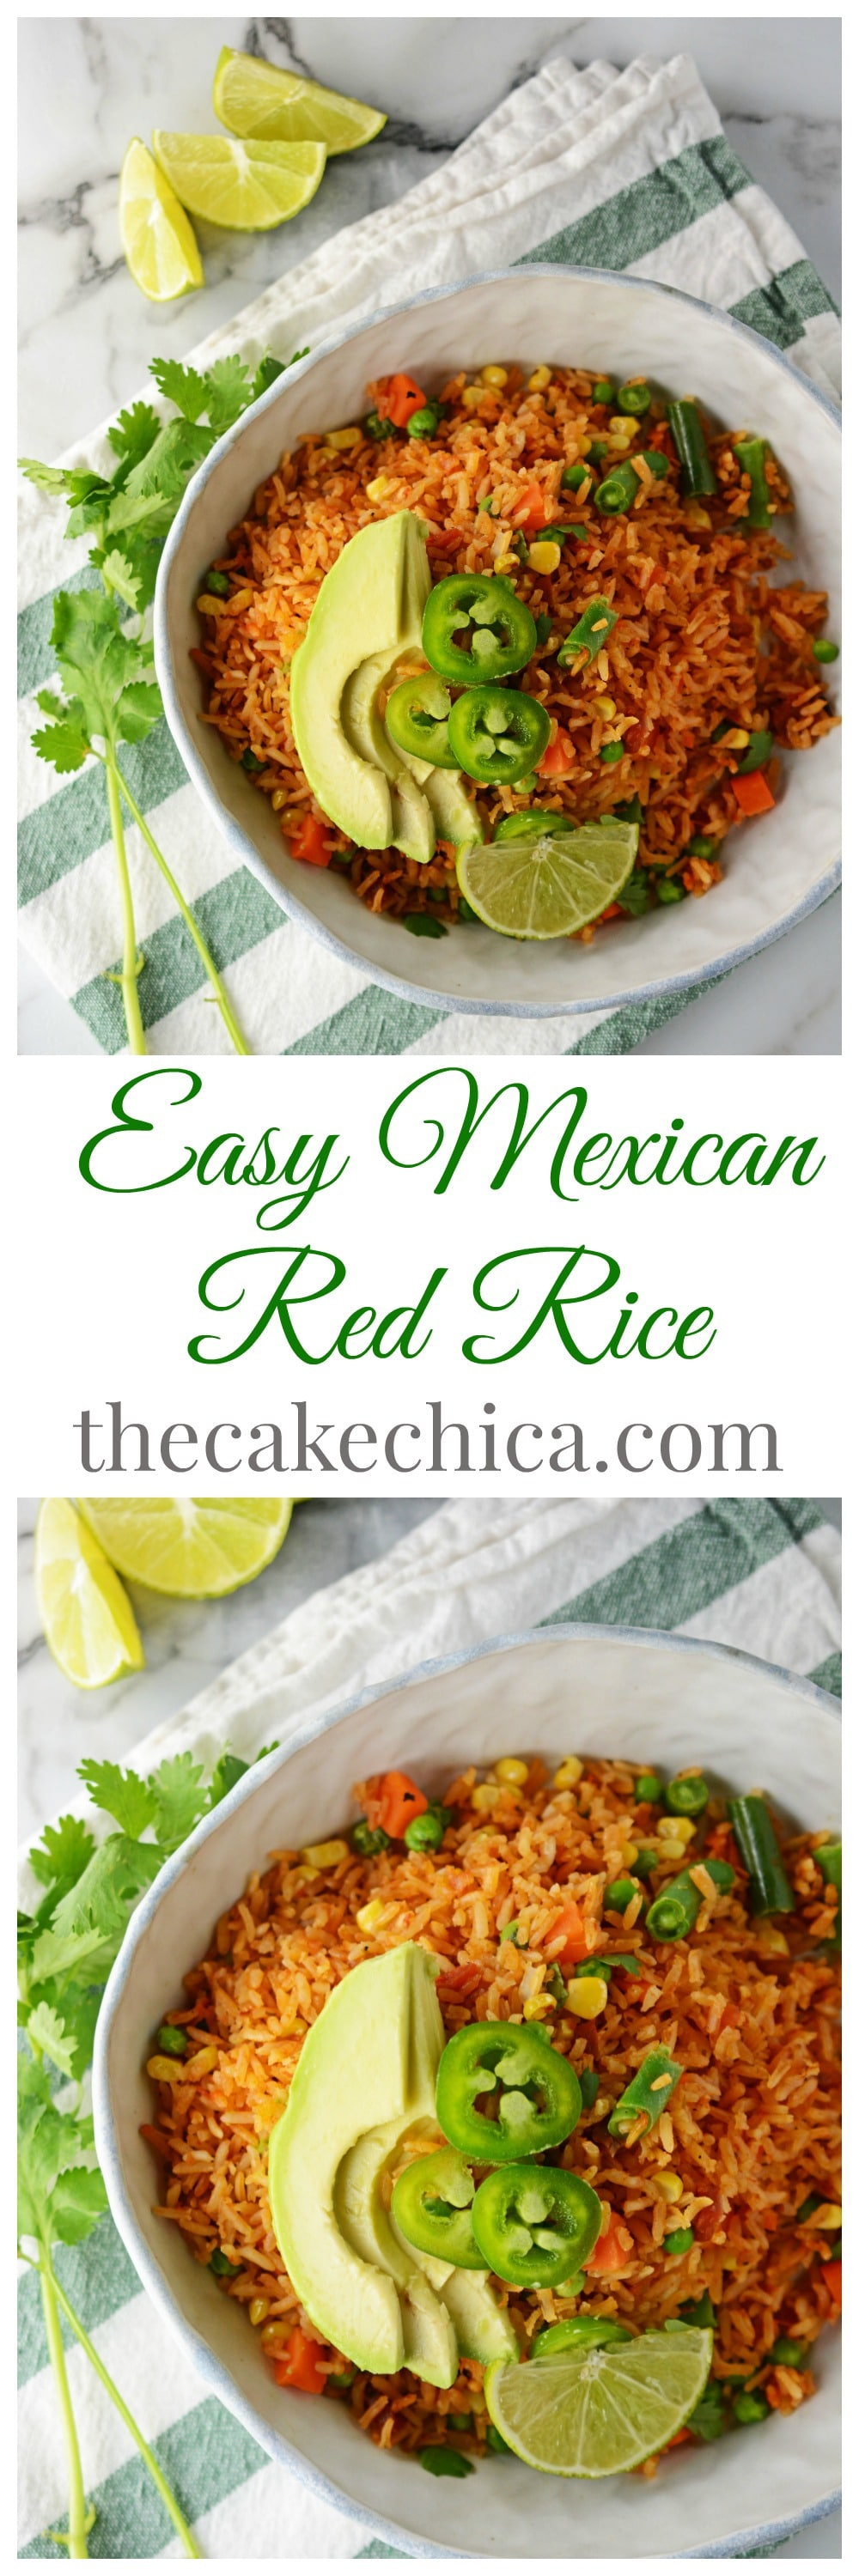 Easy Mexican Red Rice for Pinterest